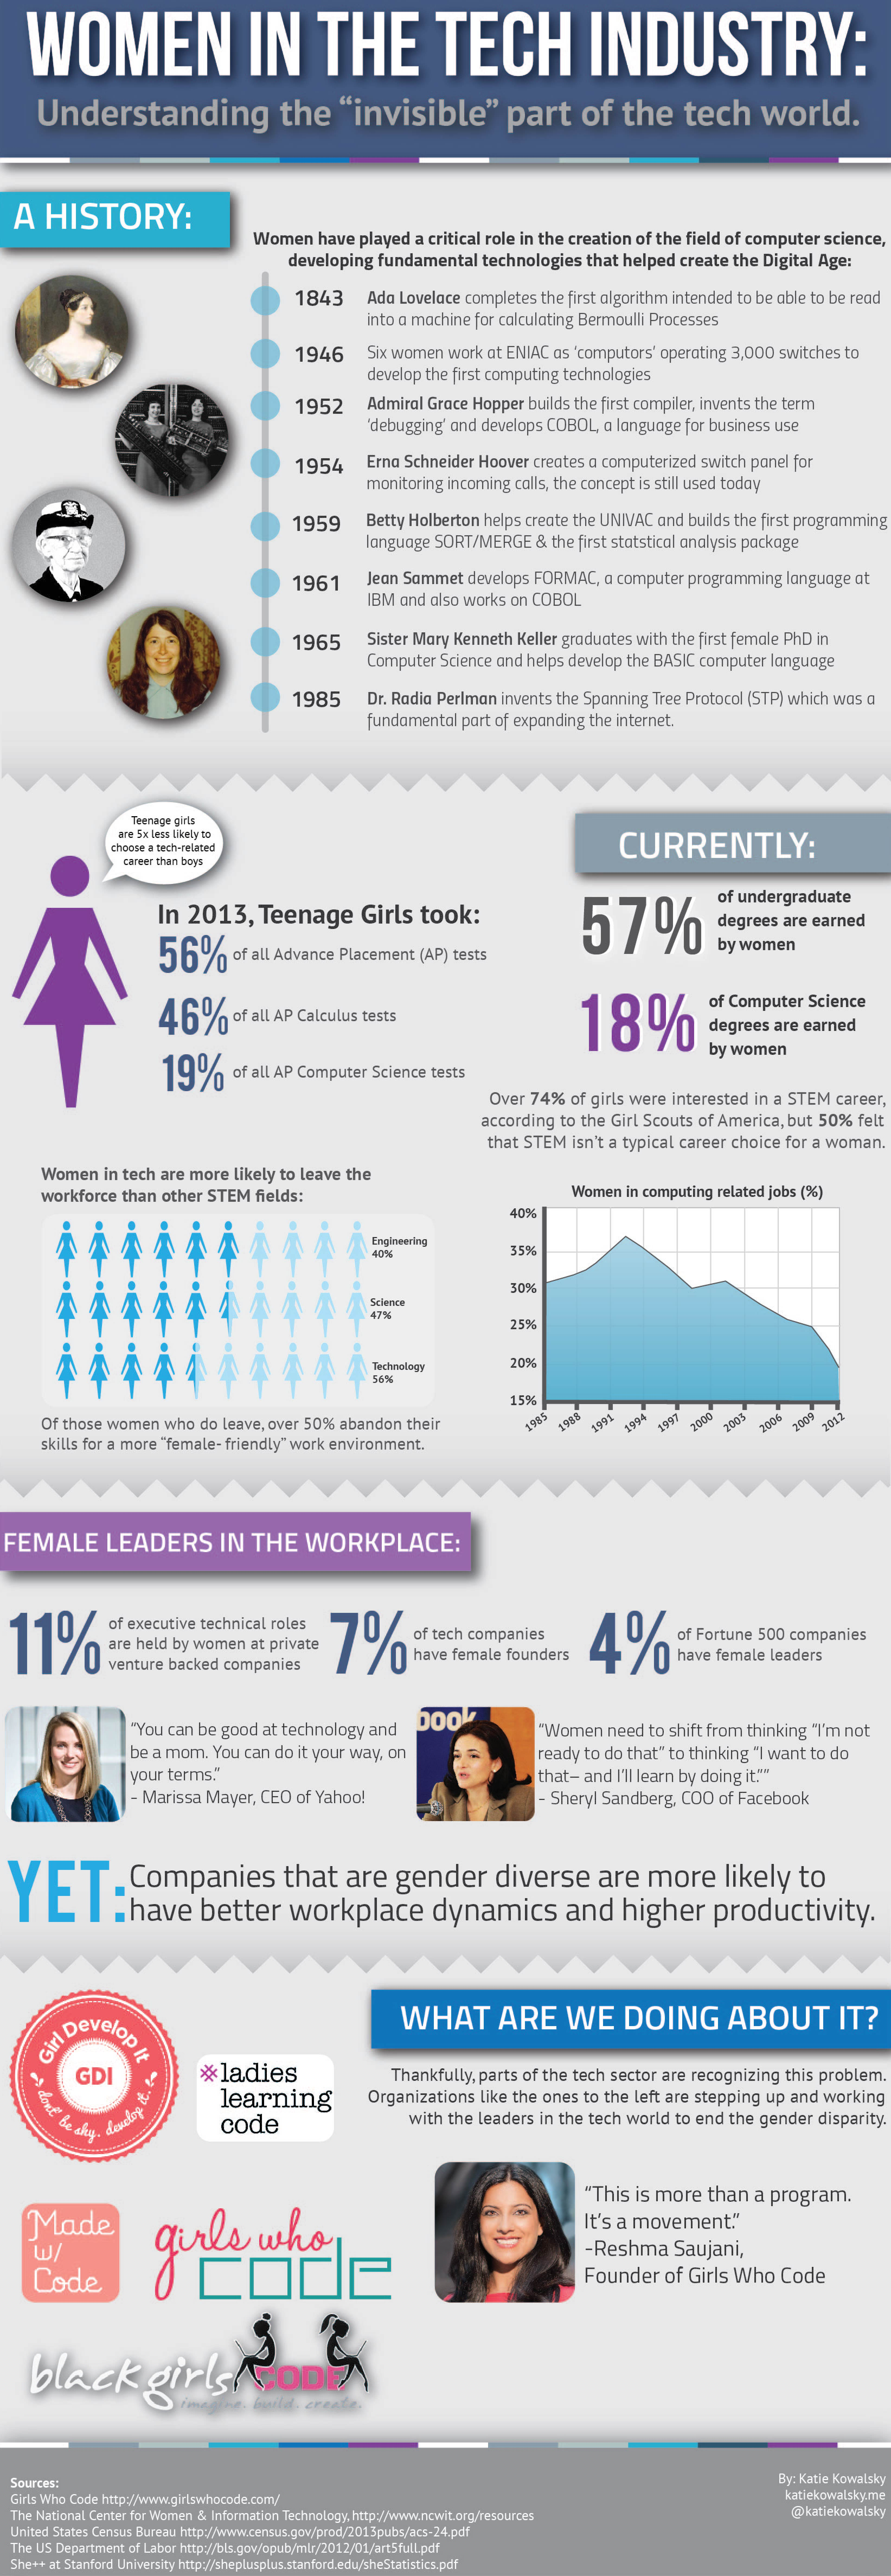 Women in Tech - an infographic by Katie Kowalsky